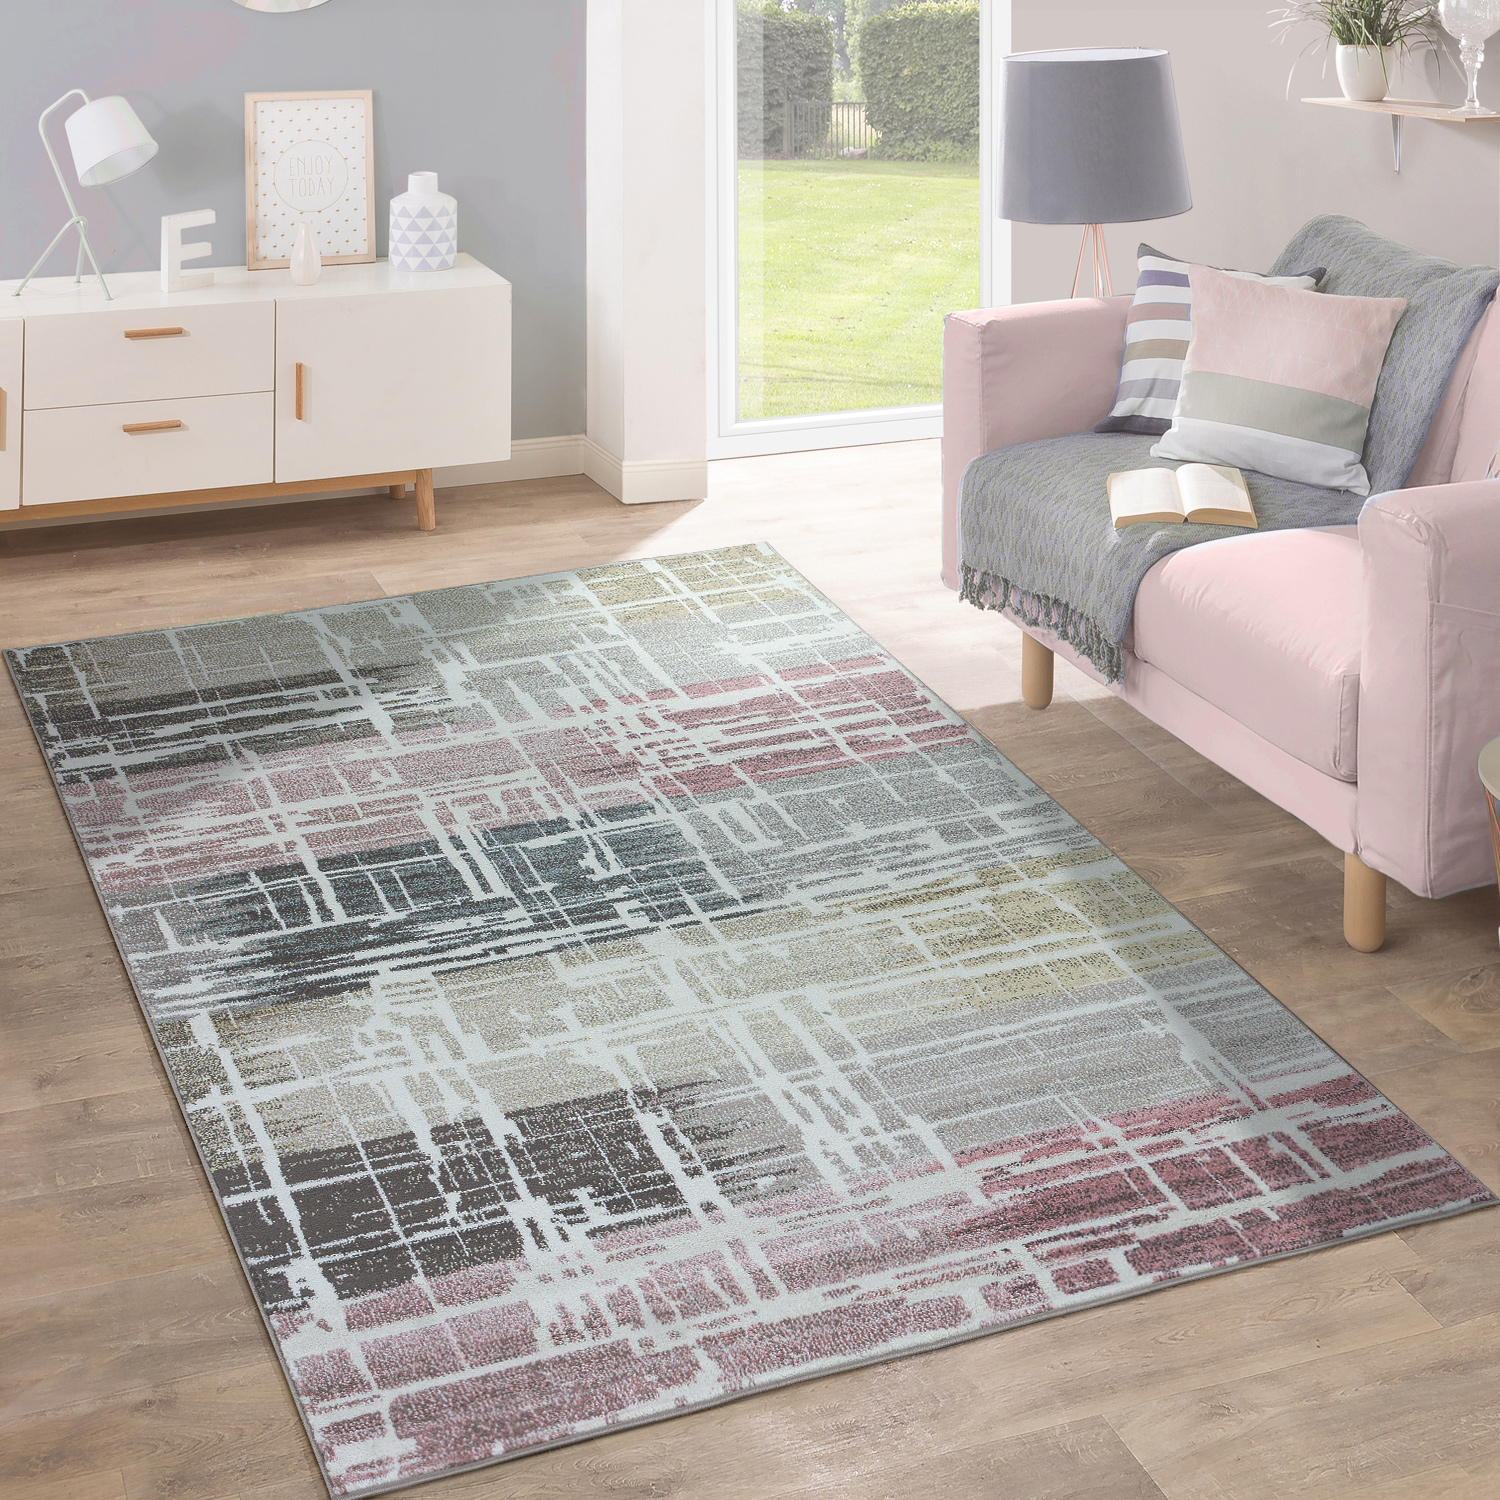 Designer Rug Modern Living Room Oil Painting Multicoloured Pastel Industrial Design